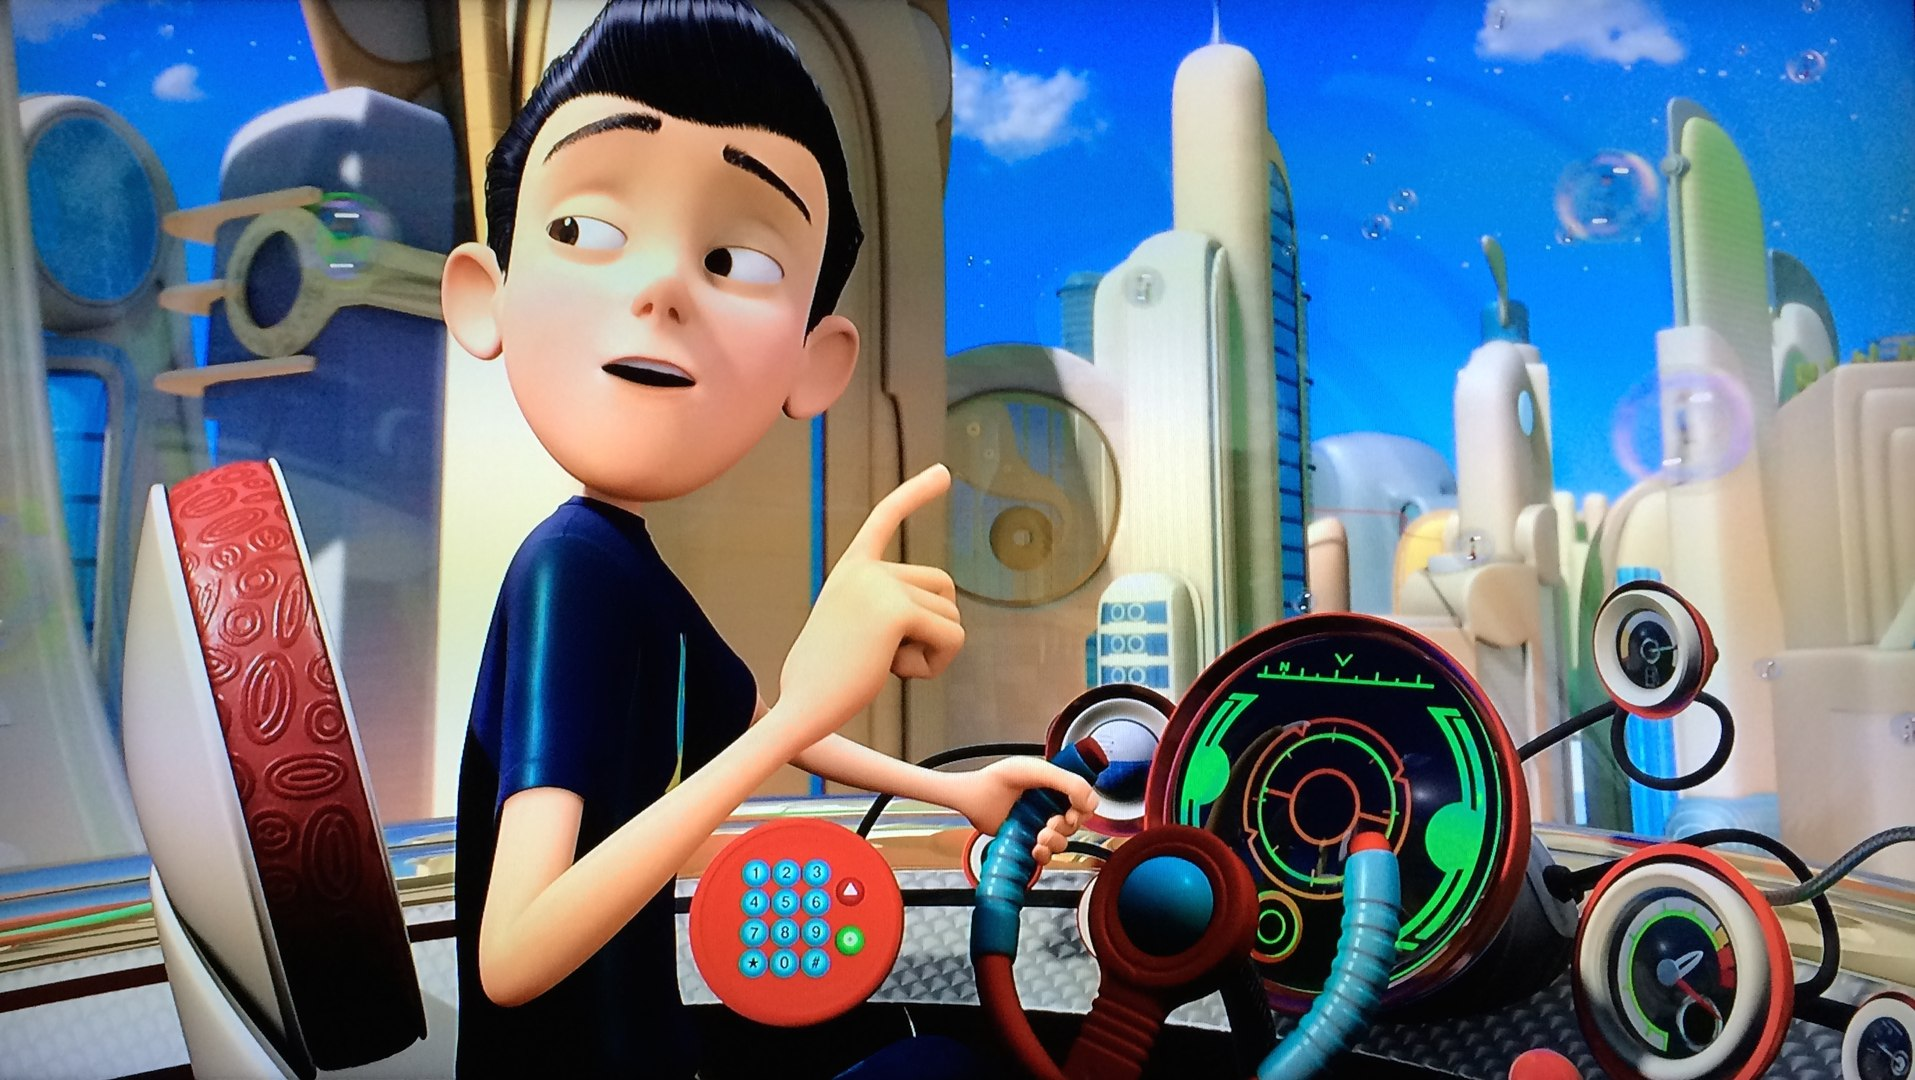 Animation Movies 2017 Full Animation Movies - Meet the Robinsons Part 1